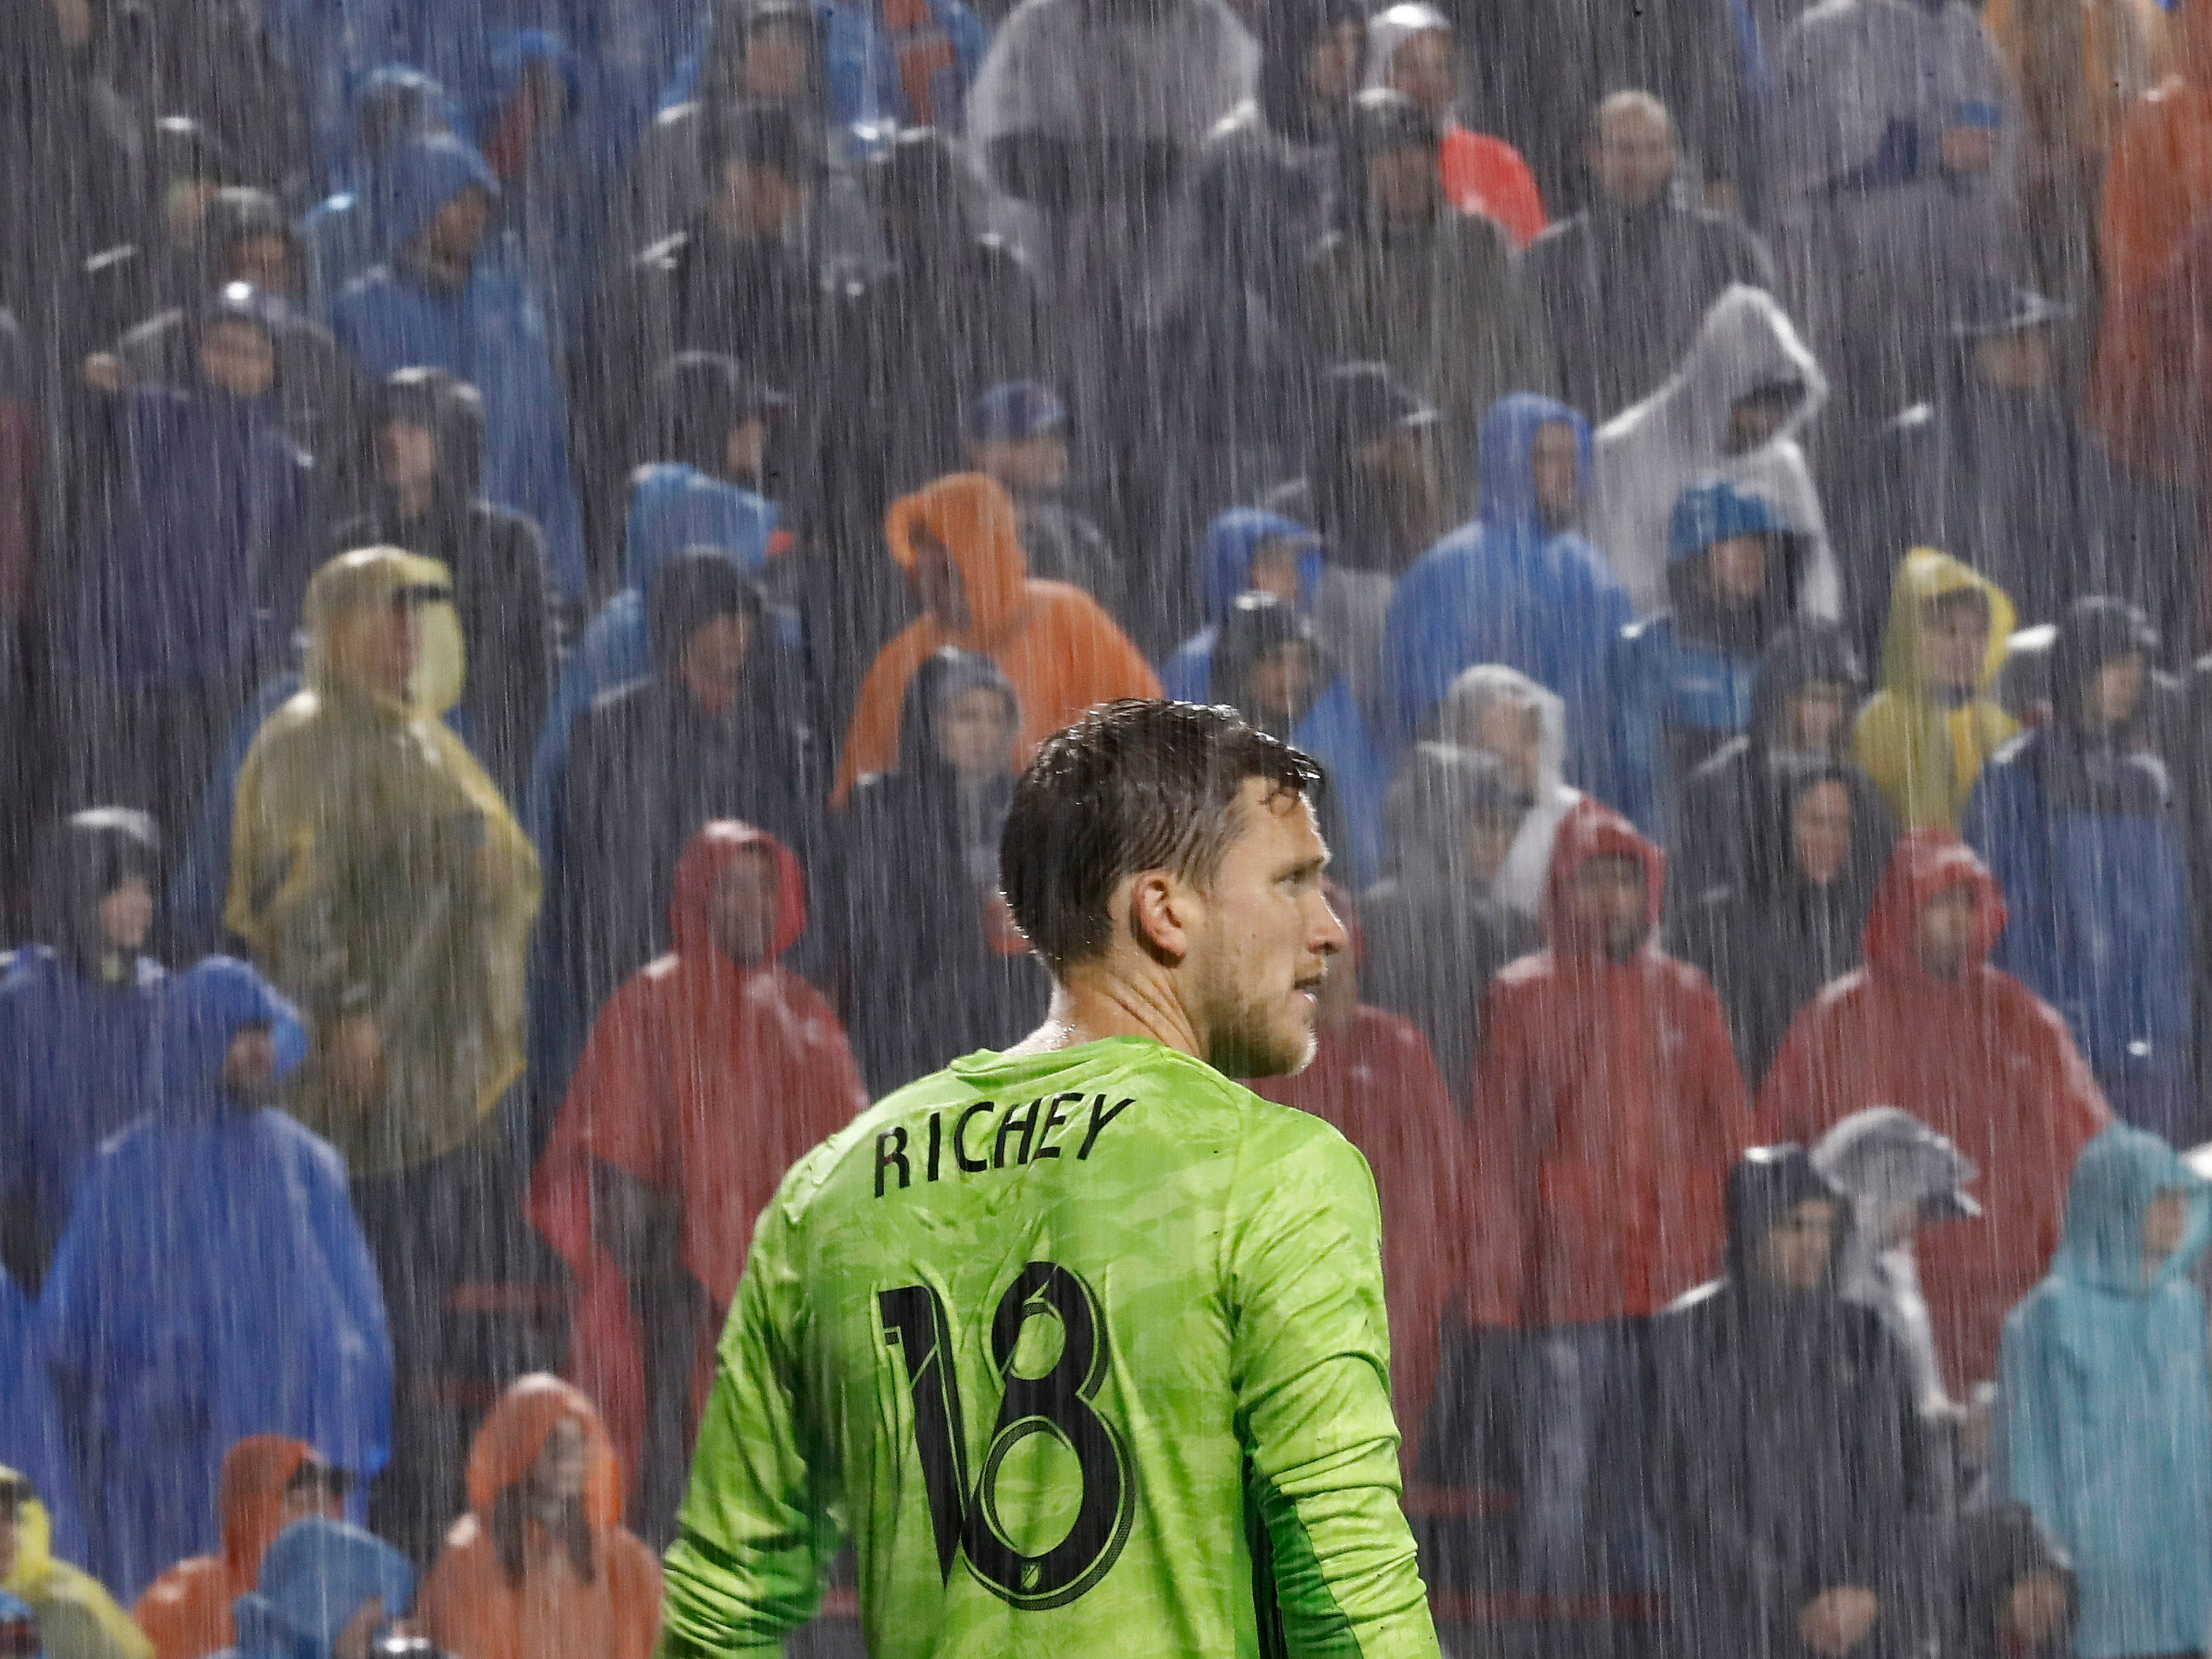 March 30: FC Cincinnati goalkeeper Spencer Richey stands in net as the rain falls in the game against the Philadelphia Union in the first half at Nippert Stadium. Philadelphia won the game, 2-0.